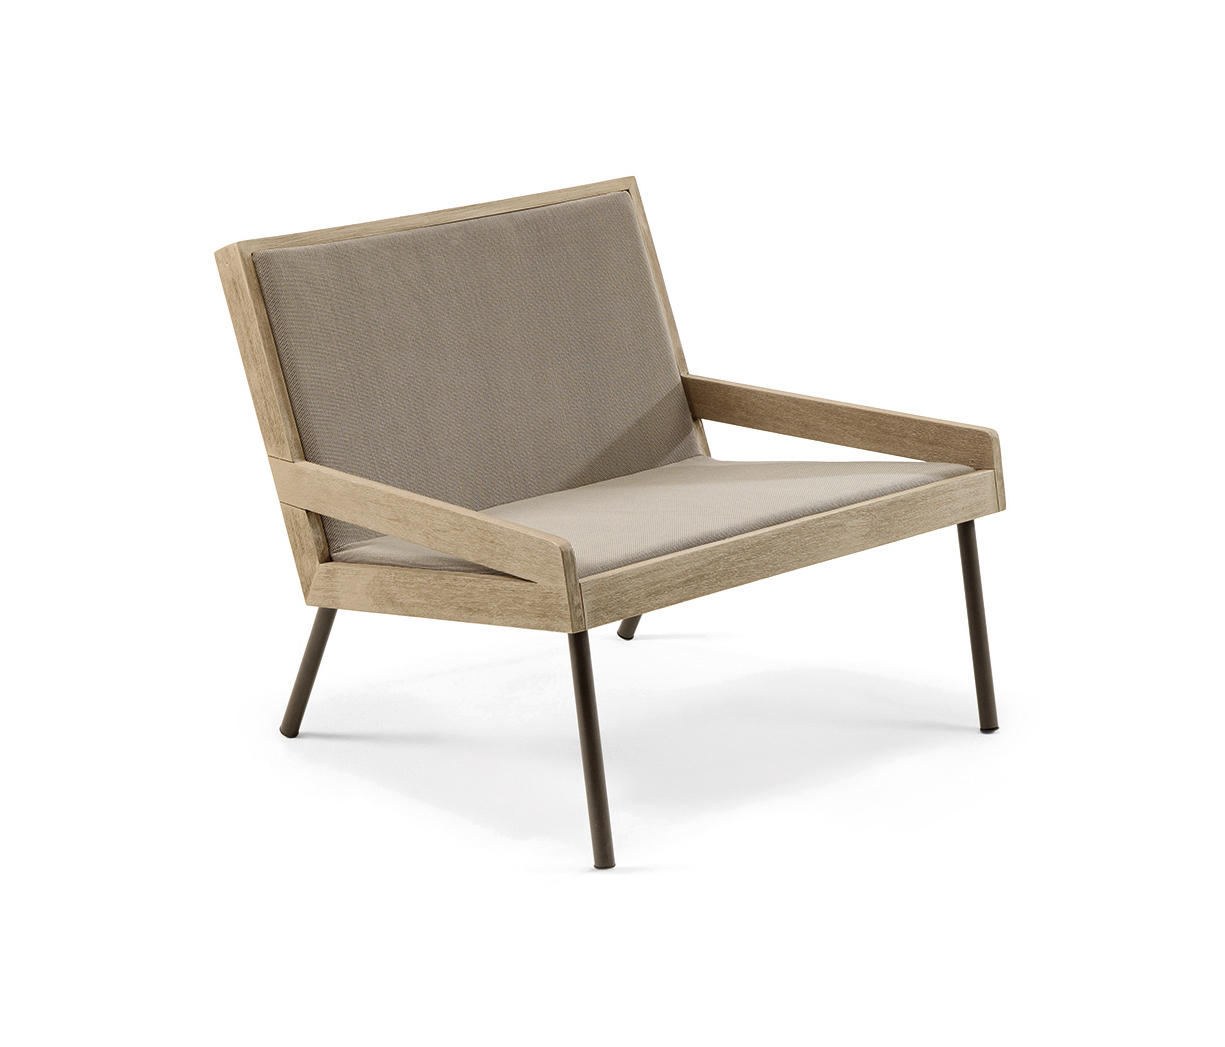 Charming Urban Arm Chair #24 - Allaperto Urban Lounge Armchair By Ethimo | Garden Armchairs